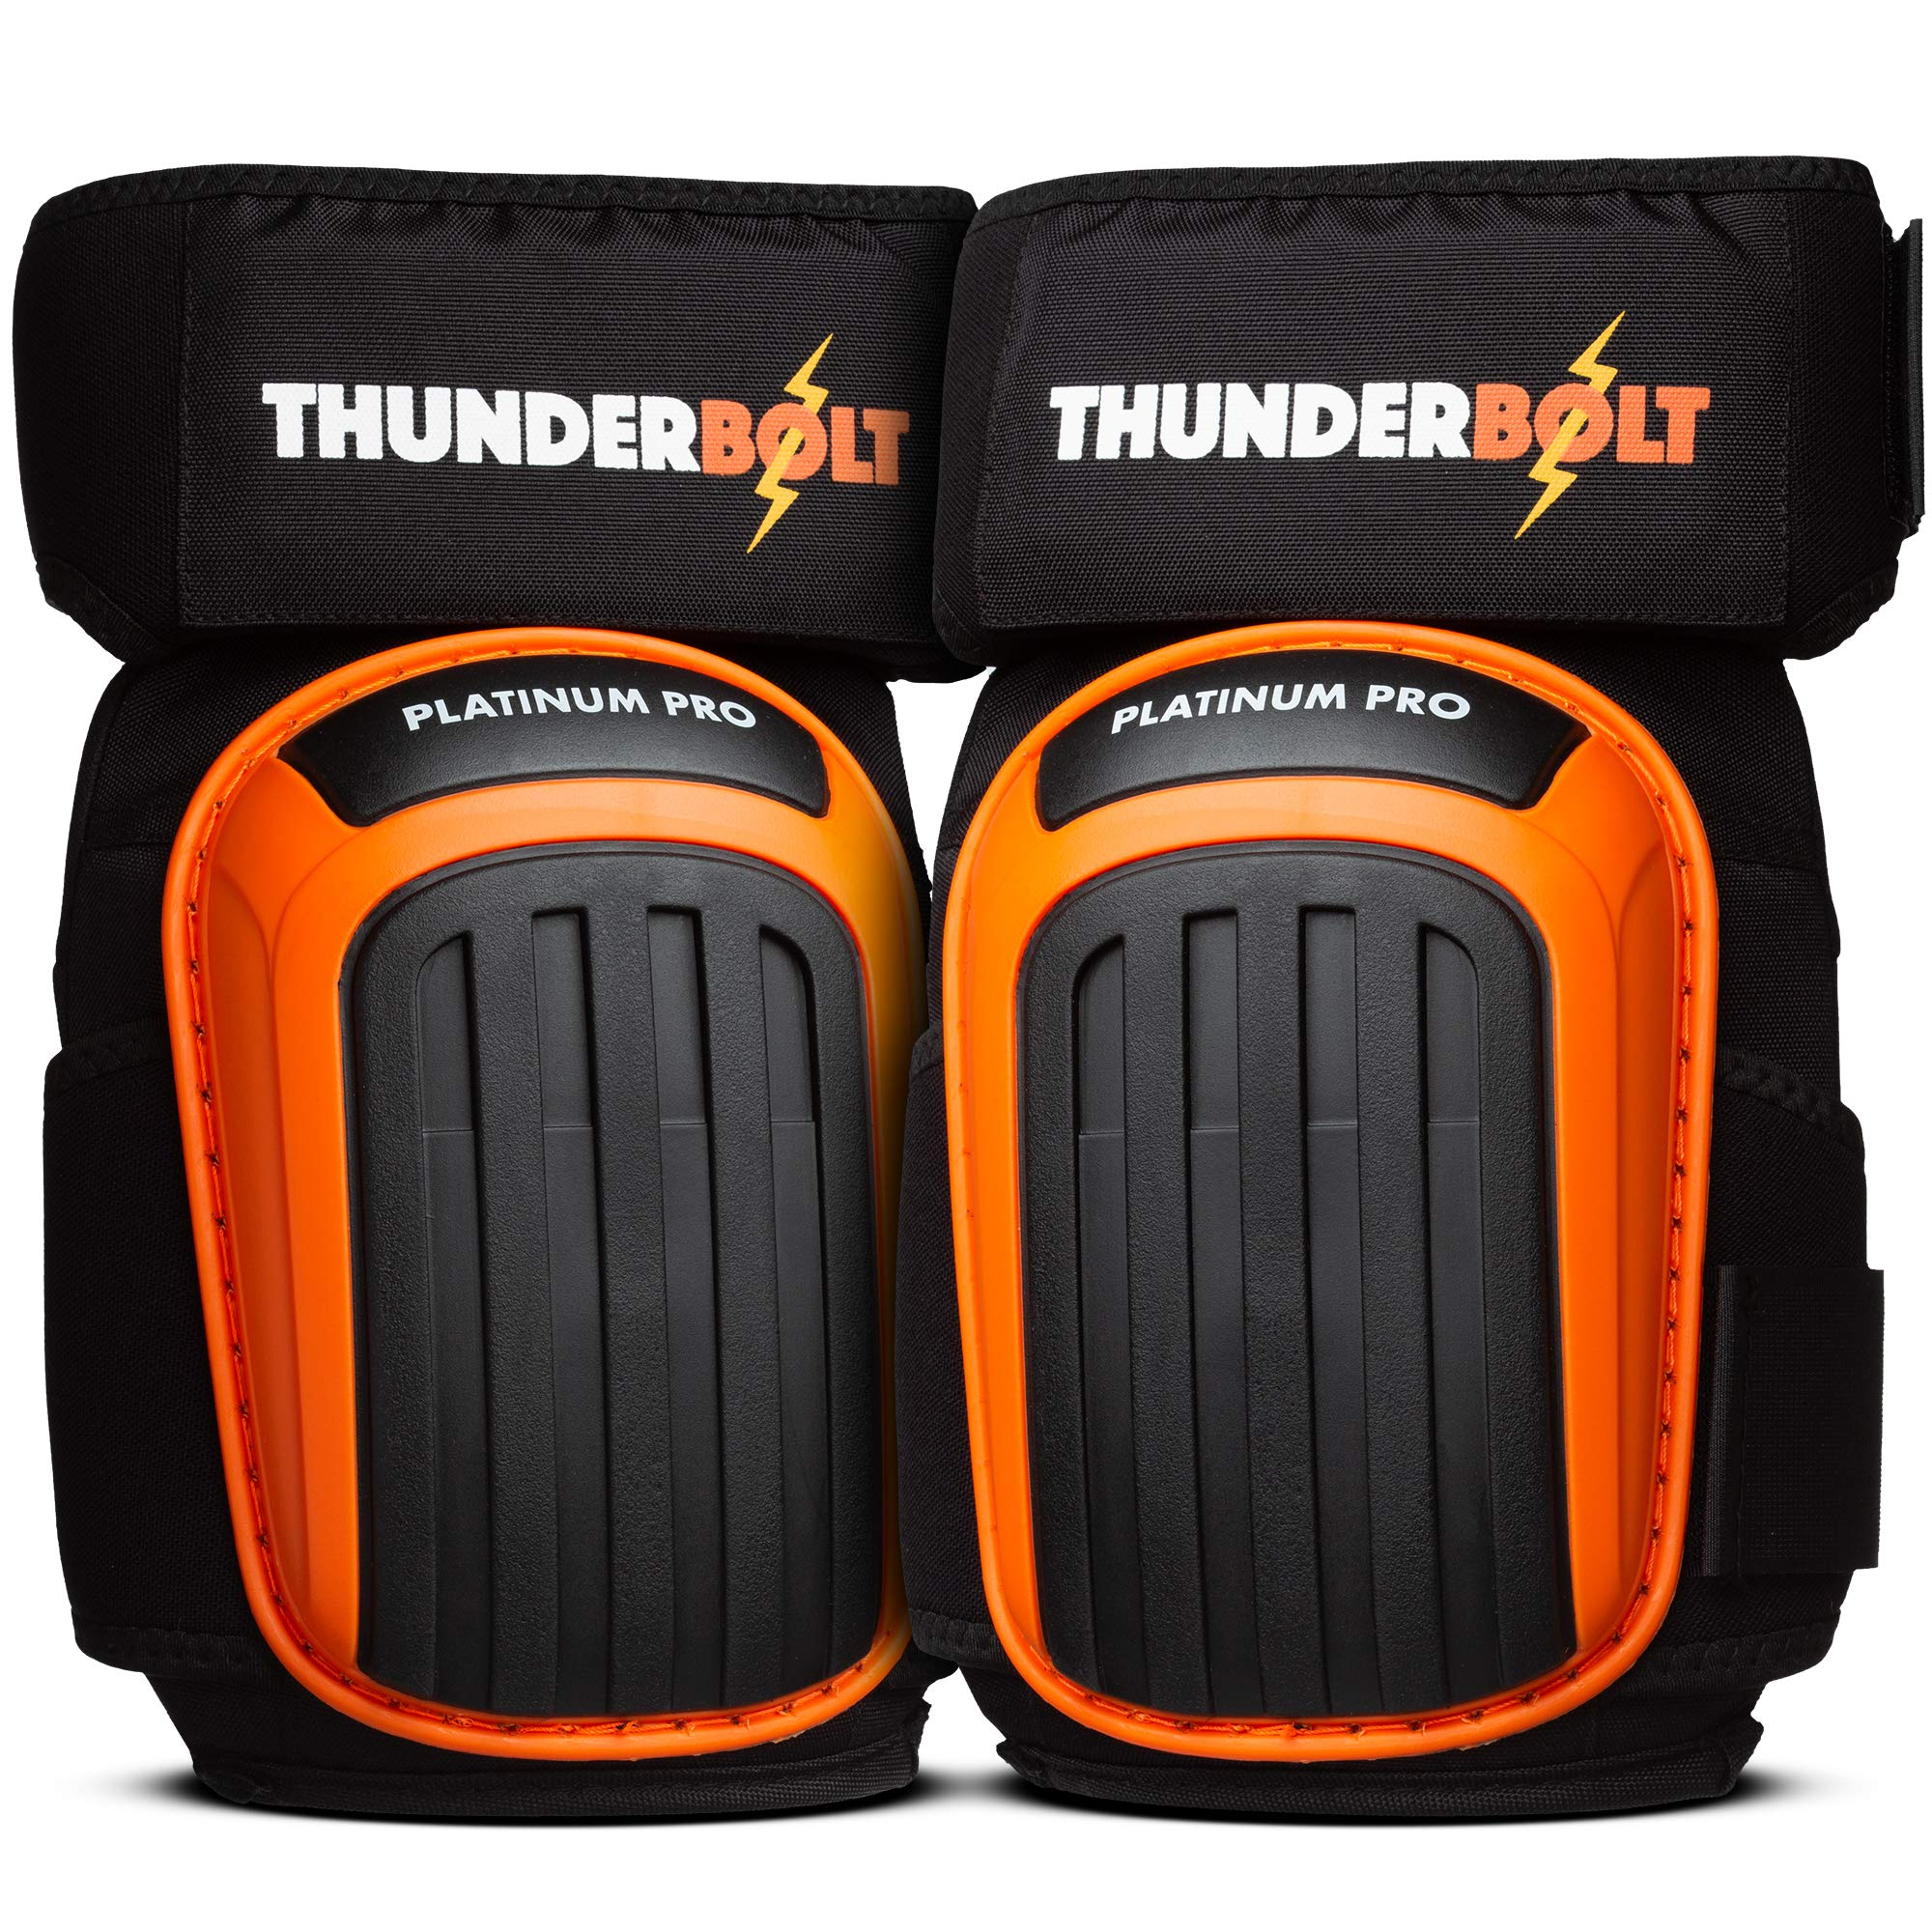 Knee Pads for Work by Thunderbolt with Heavy Duty Foam Cushioning and Gel Cushion Perfect for Construction, Flooring and Gardening with Adjustable Anti-Slip Straps by Thunderbolt (Image #1)